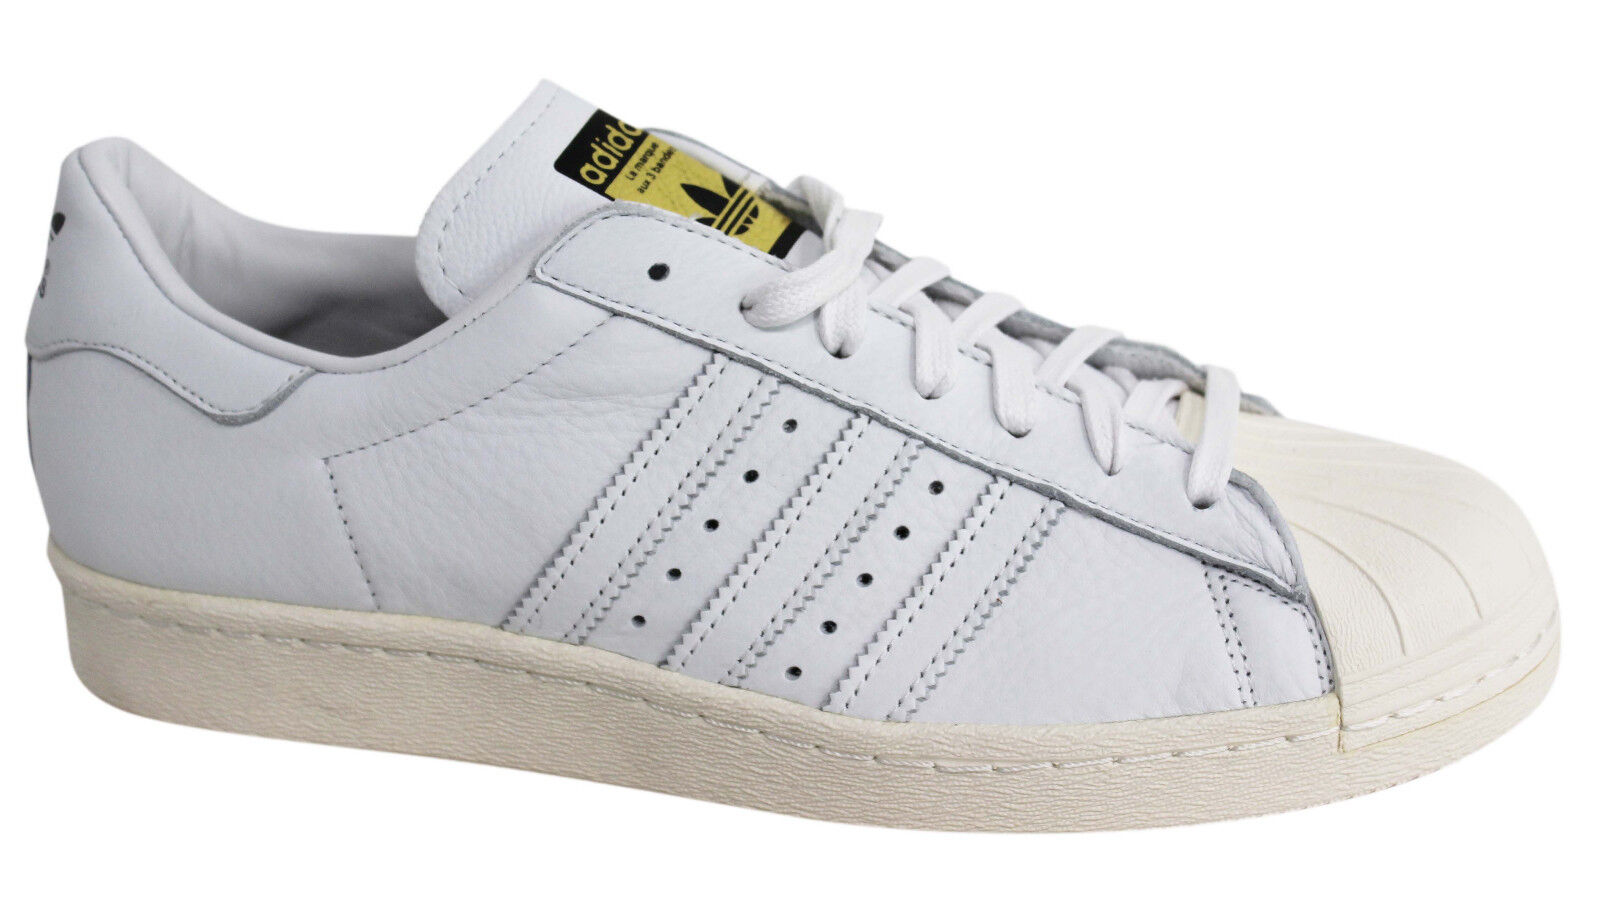 Adidas Originals Superstar 80s Deluxe Lace Up White Leather Trainers S75016 M9